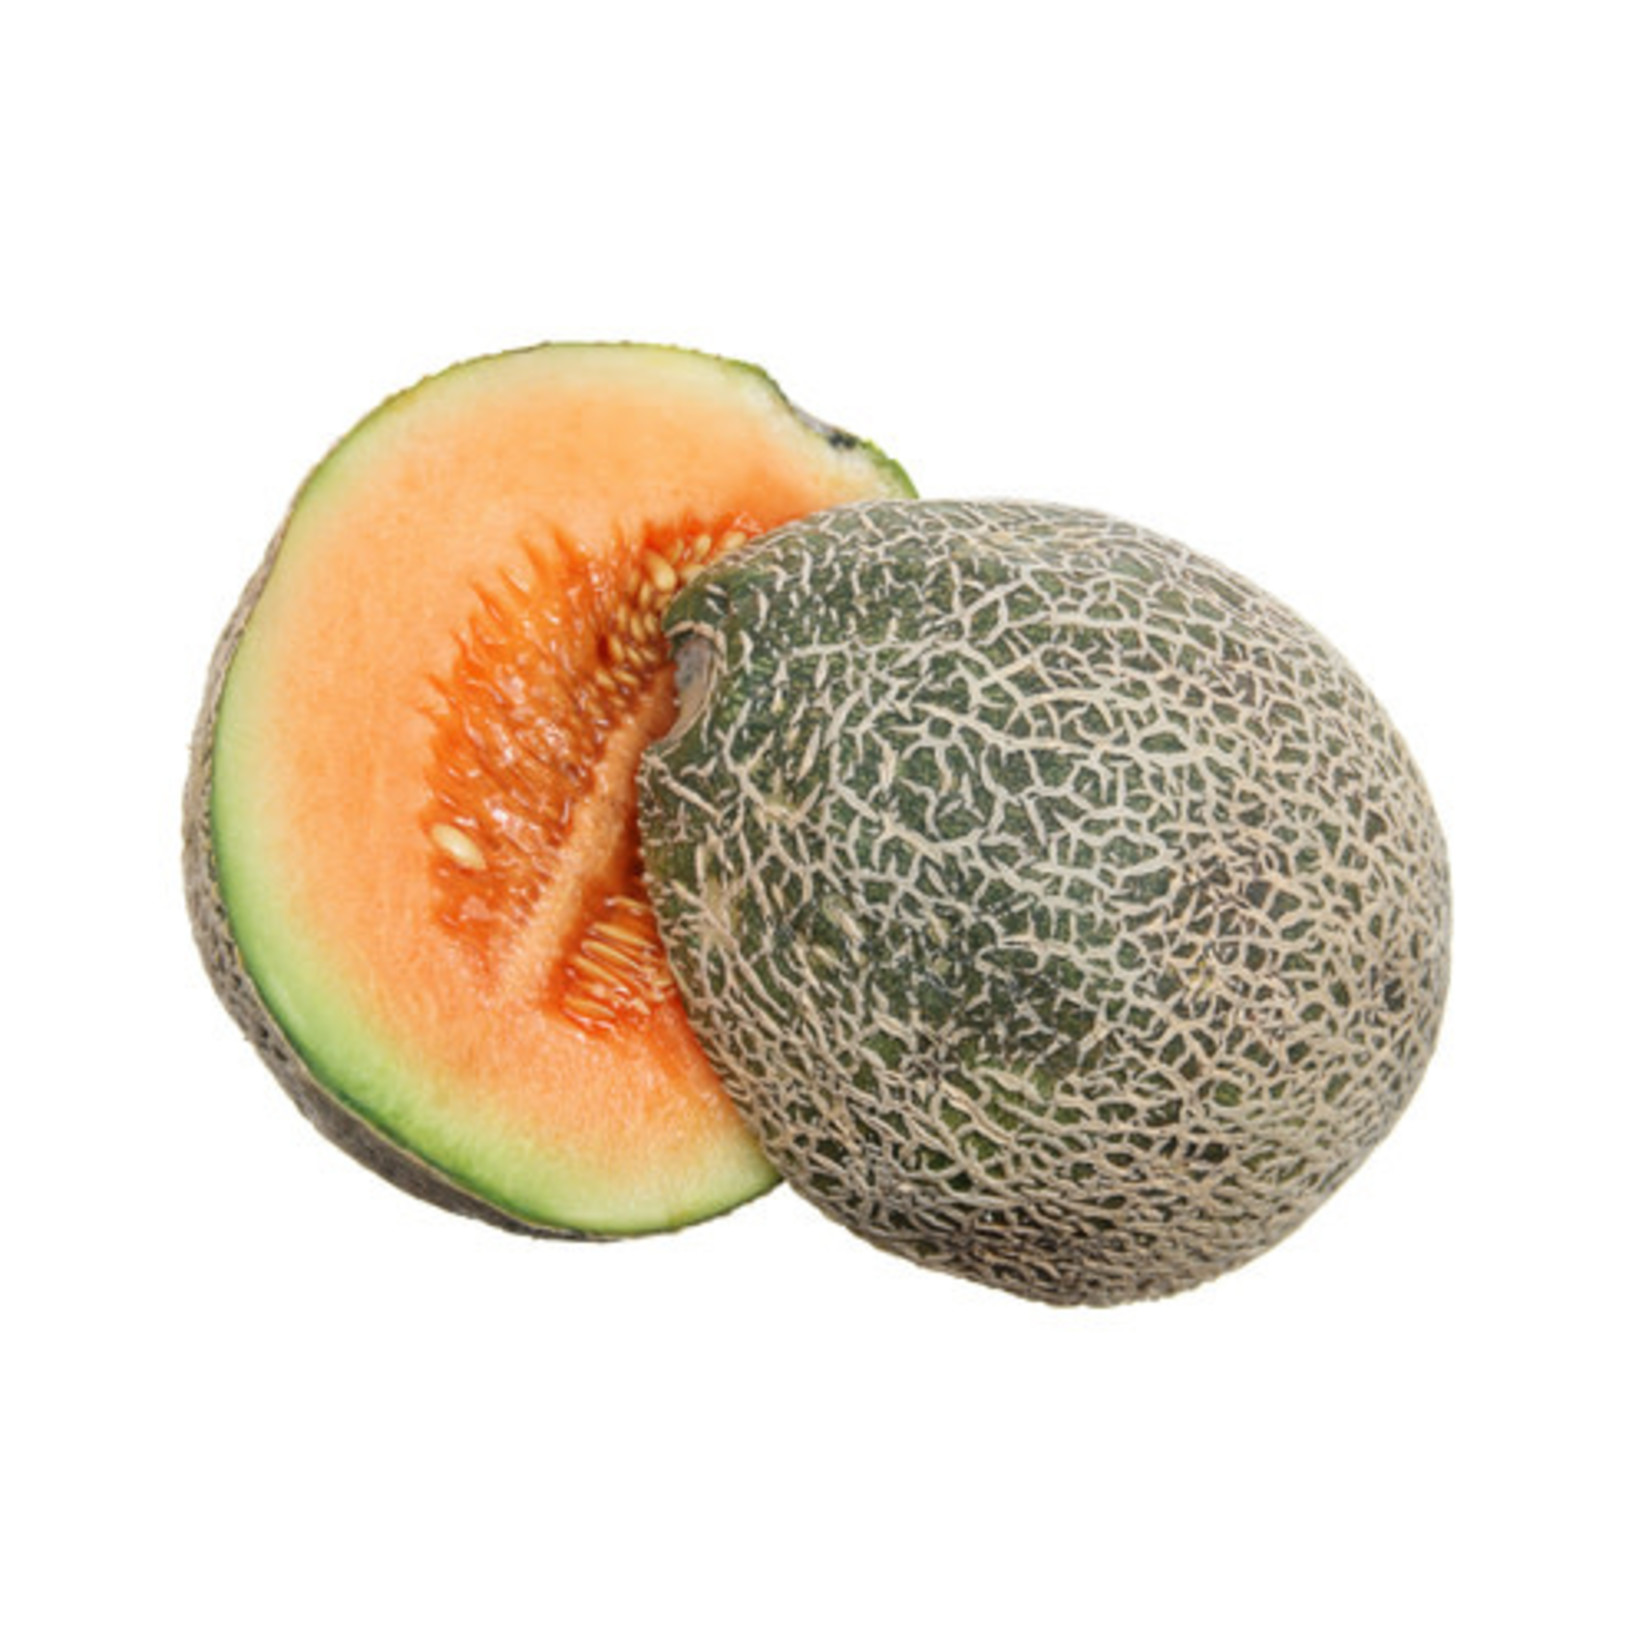 Cantaloupe - 2 cell pack